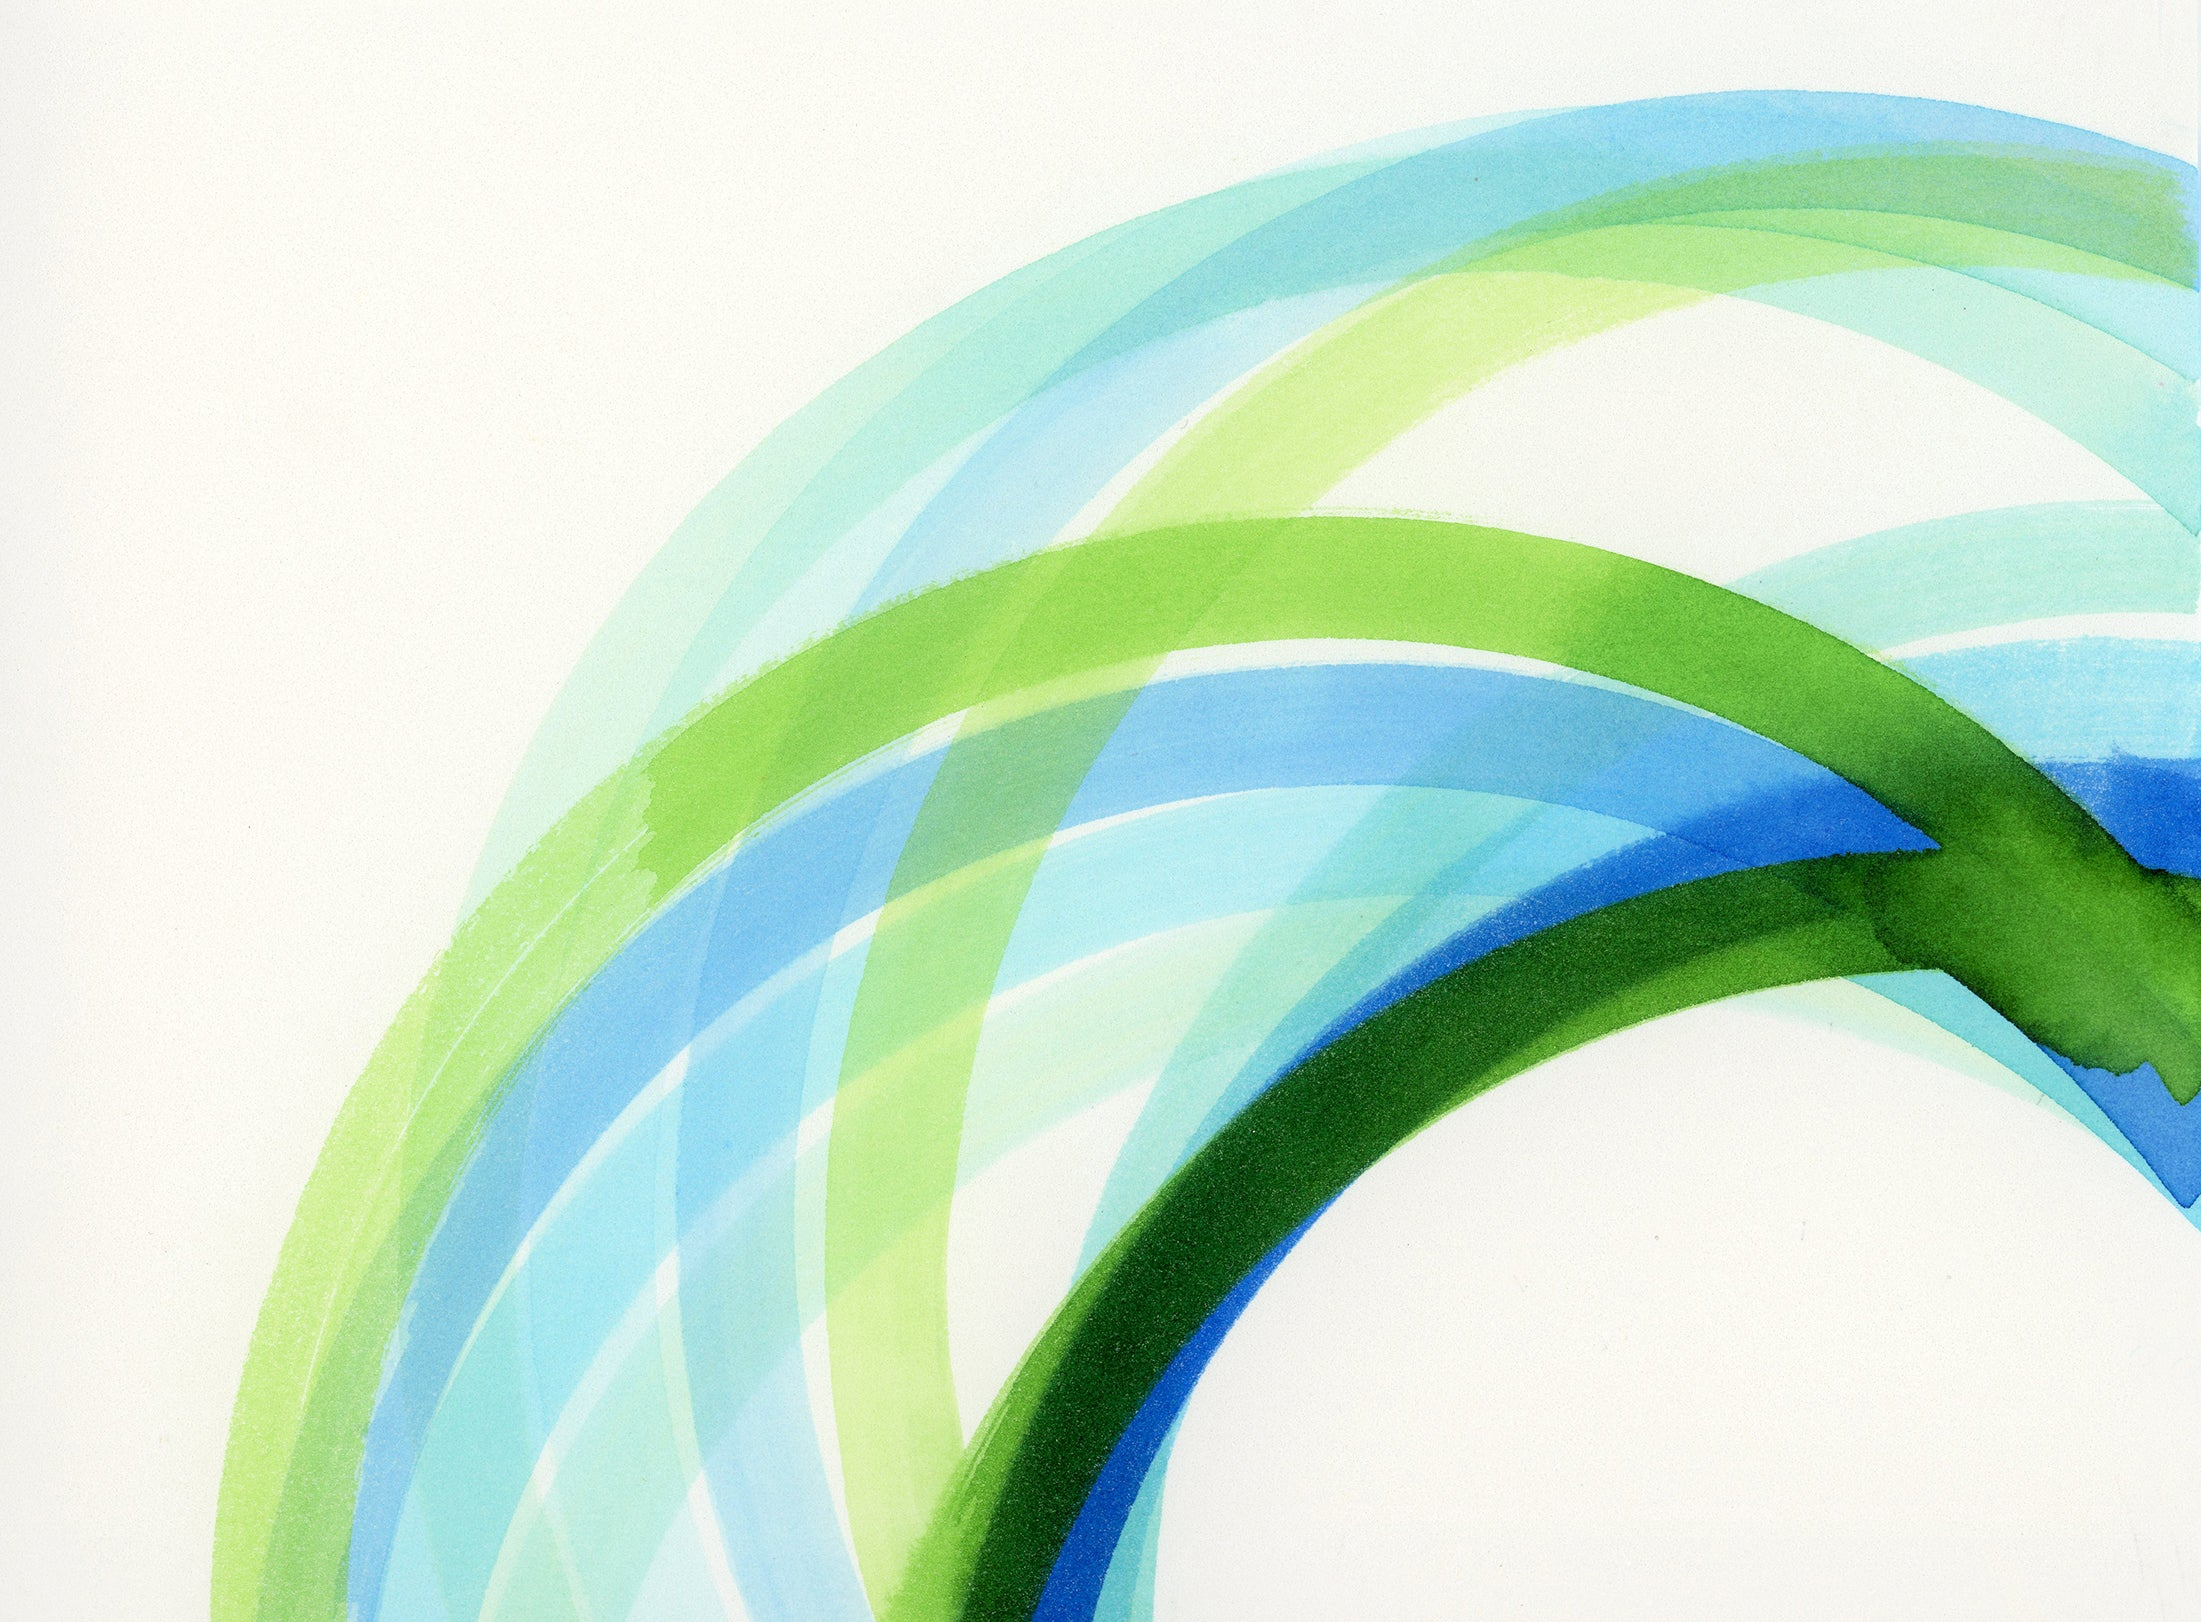 abstract painting of interlocking green, blue, turquoise circles  detail